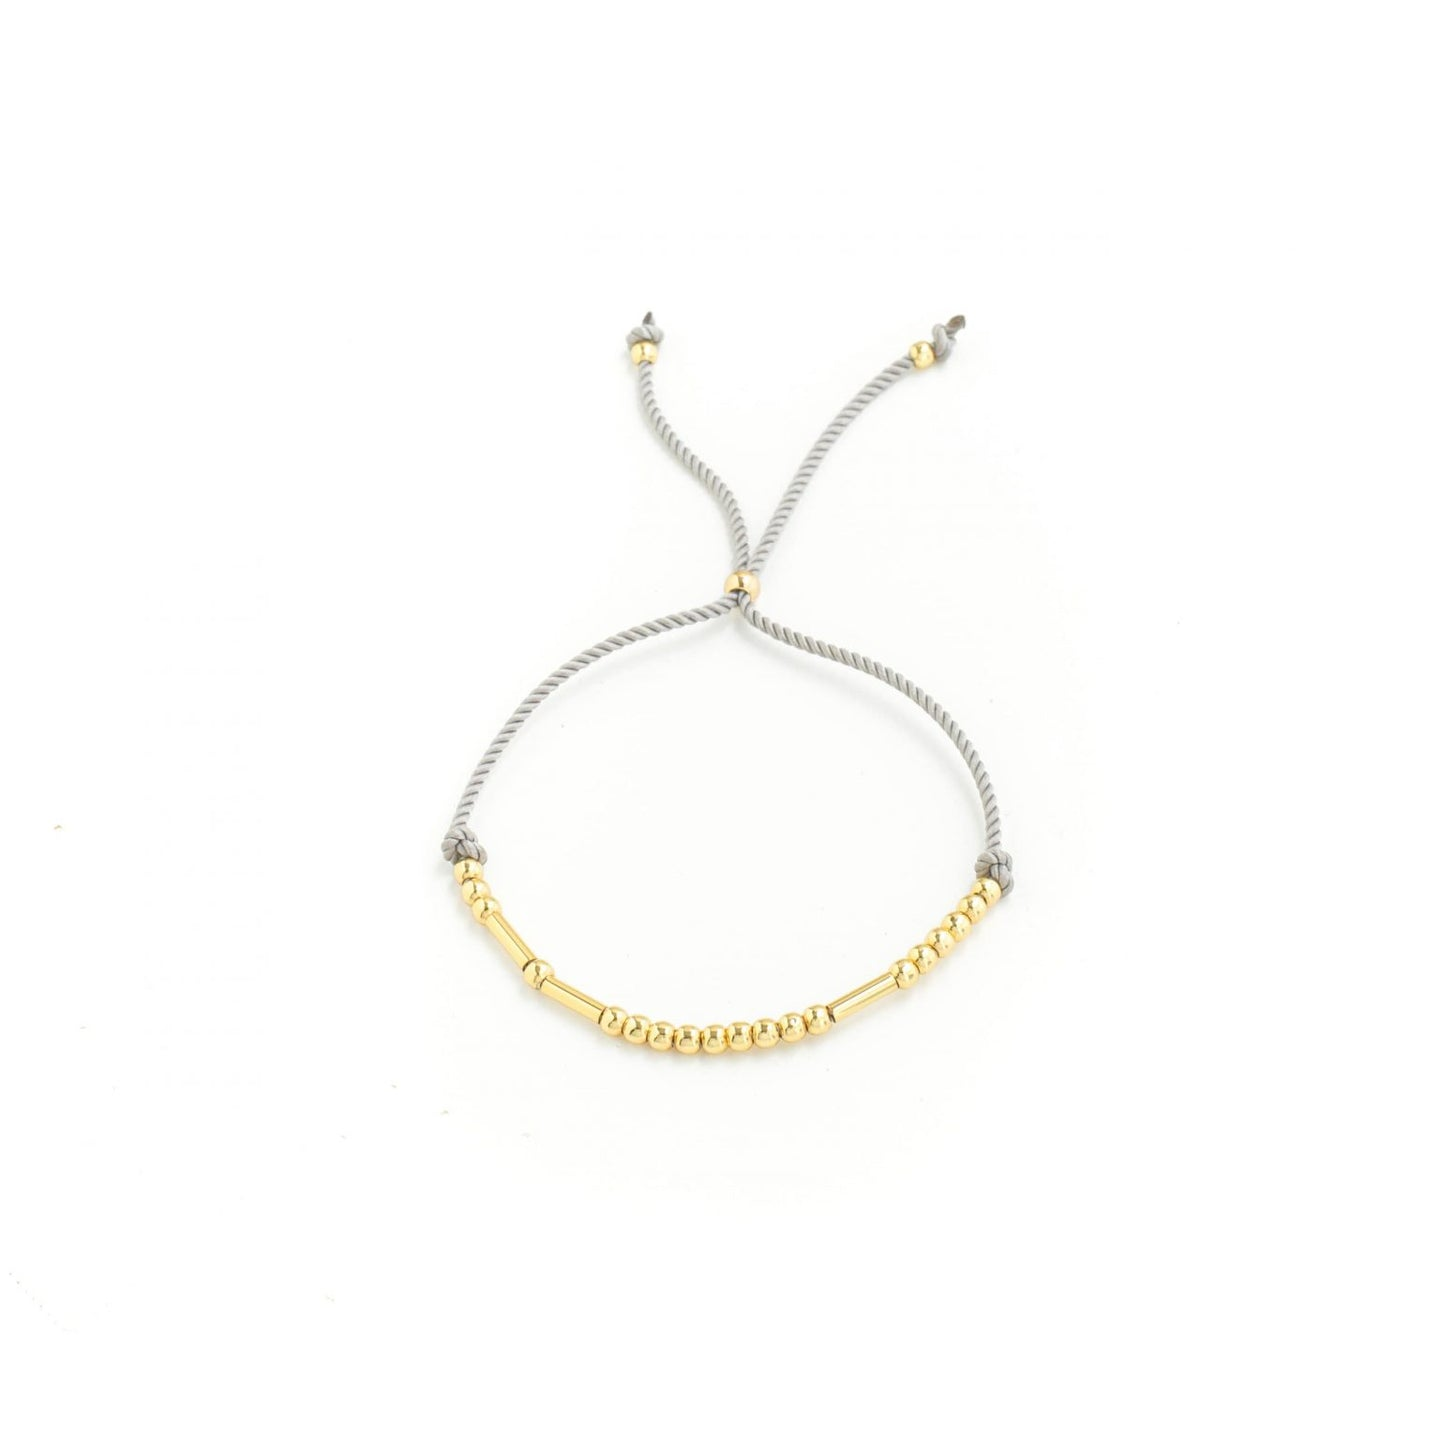 Juno Gold Beaded Cord Bracelet - Light Grey